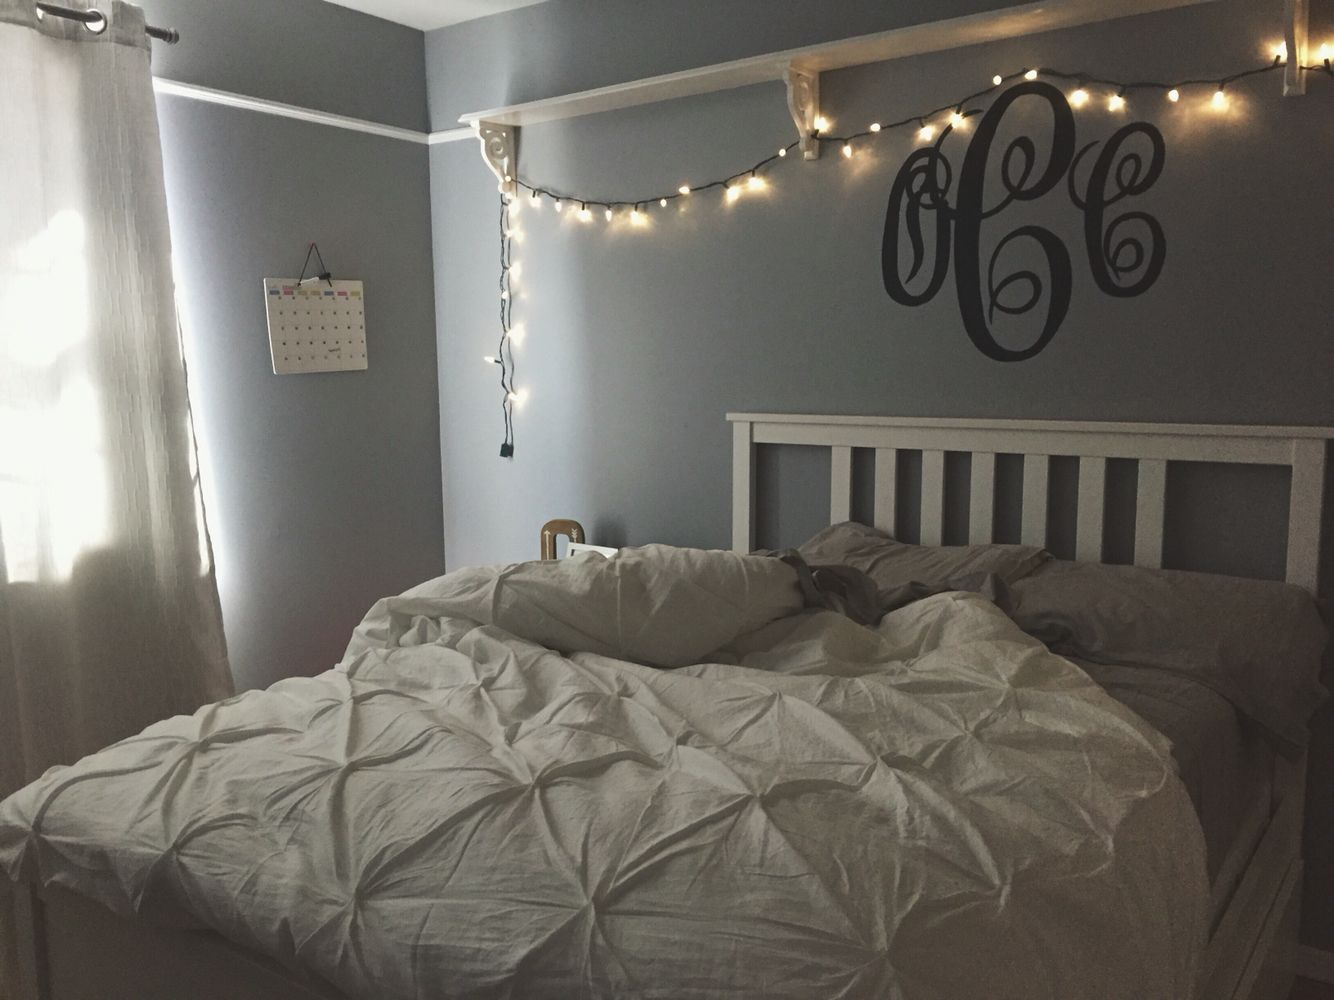 My Room Teenage Bedroom Fairy Lights Grey White Bedroom Room - Cheap bedroom fairy lights